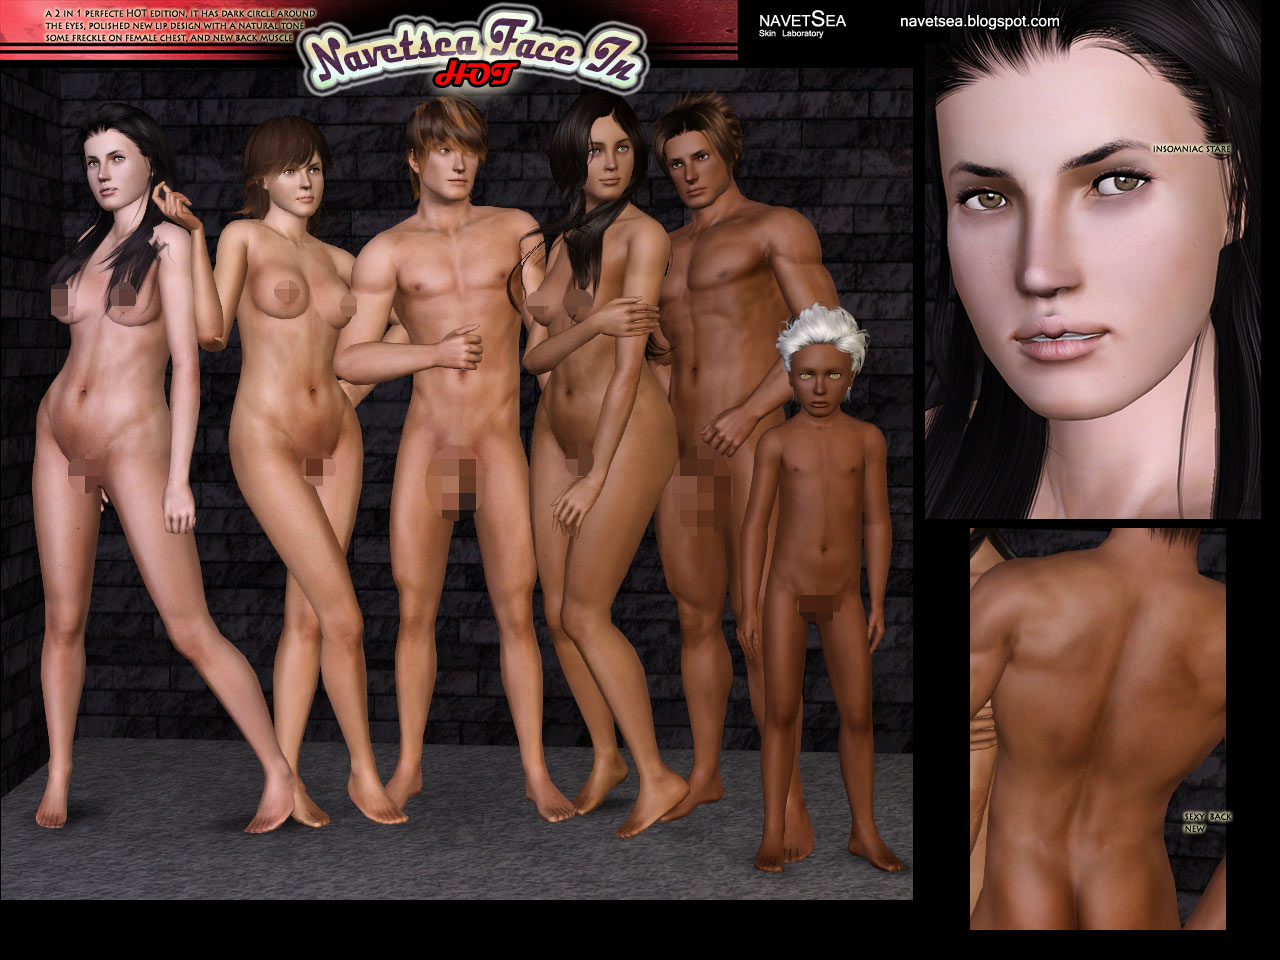 The sims 3 naked skins and sex  pron image